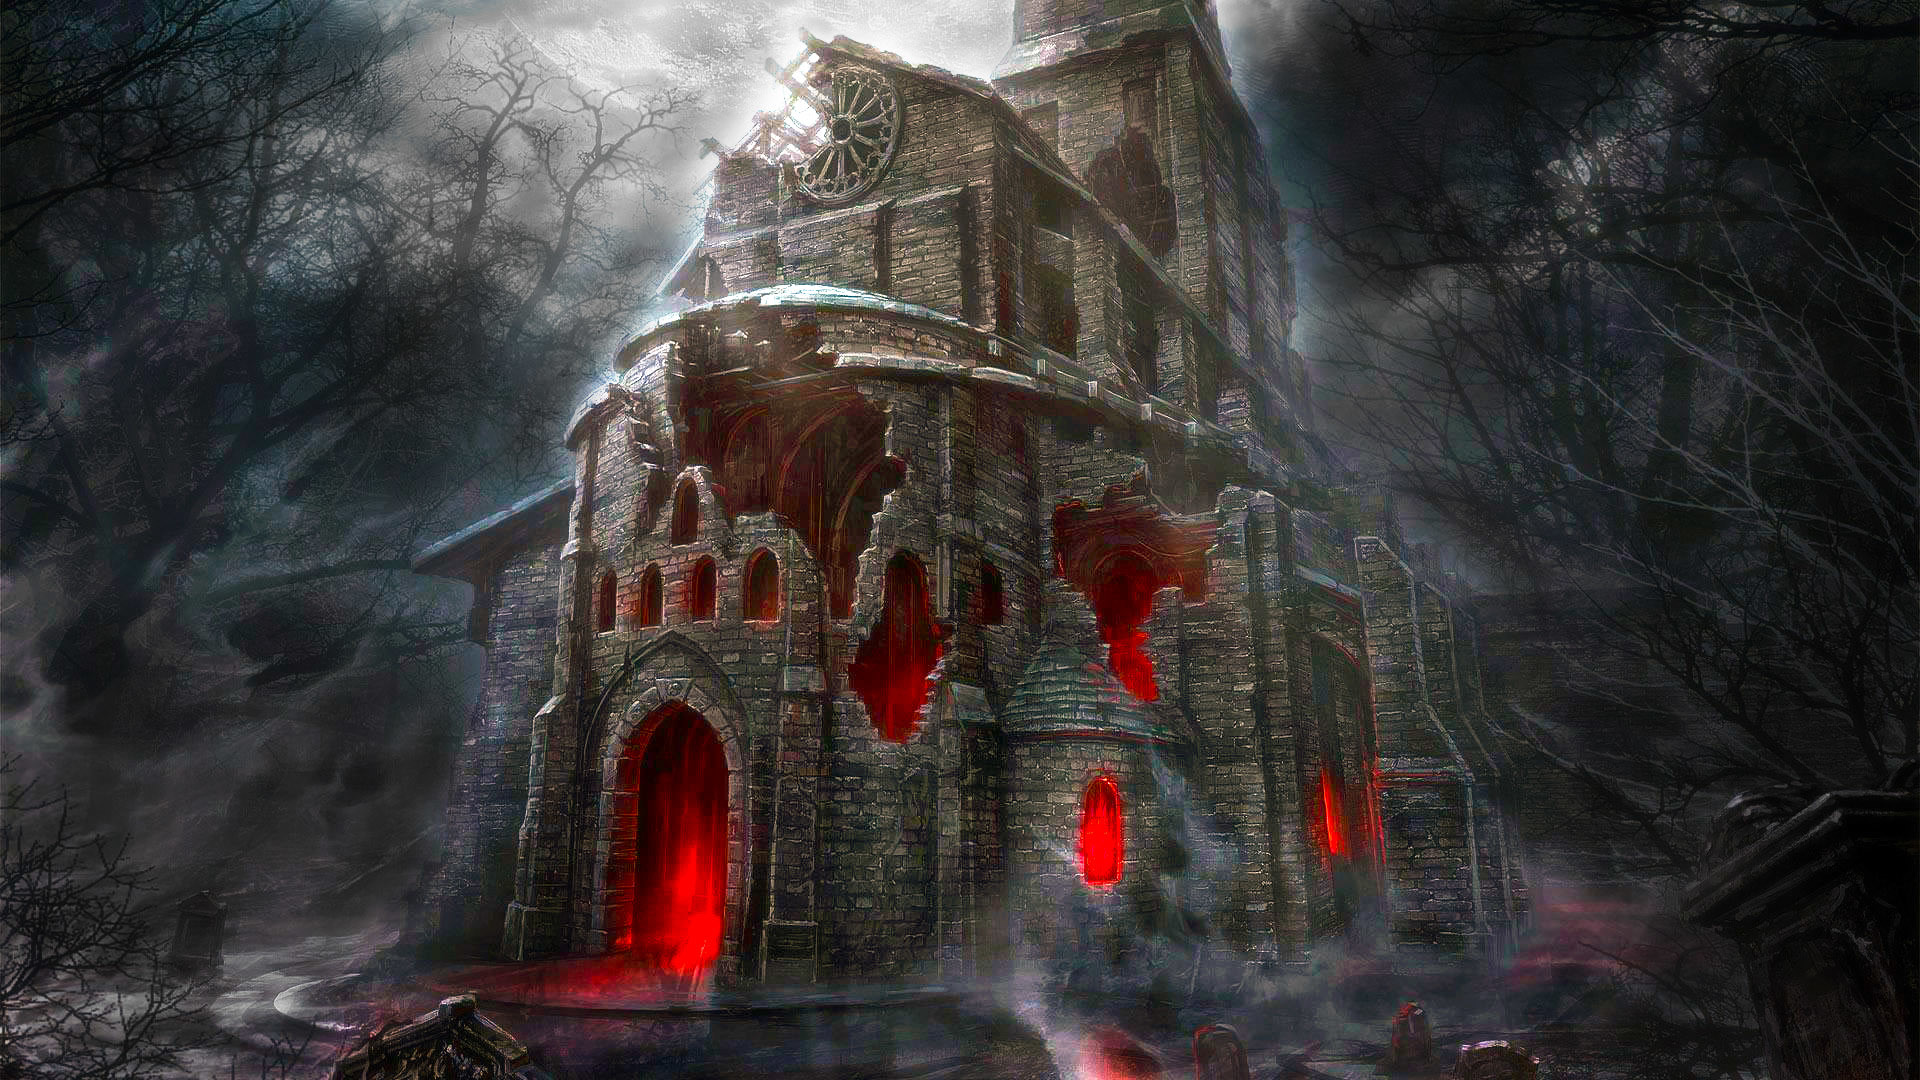 New Scary WallPapers Dark Horror HD Backgrounds The Art 1600×1200 Wallpaper  Horror (42